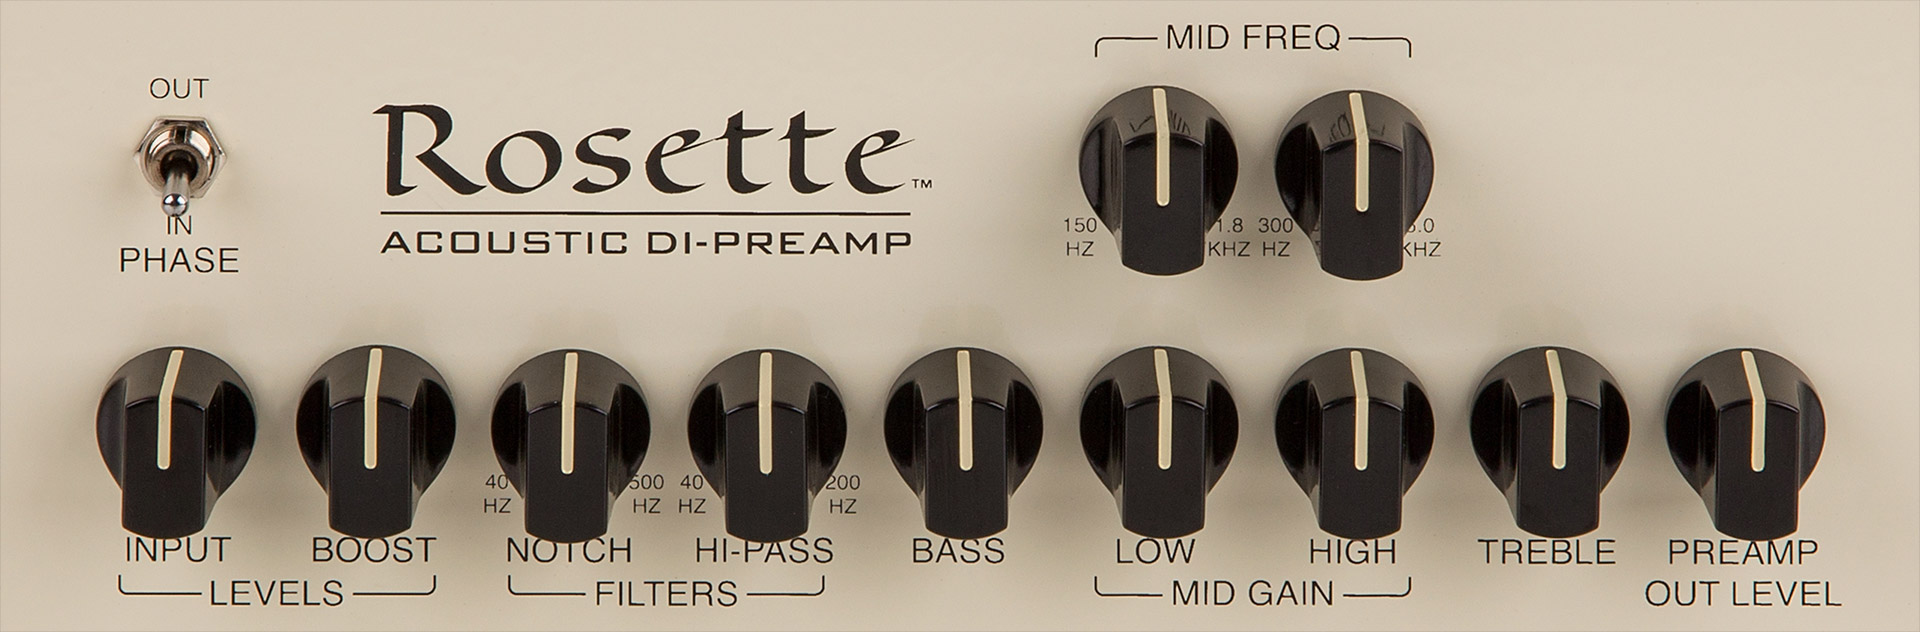 Rosette Preamp Top Panel